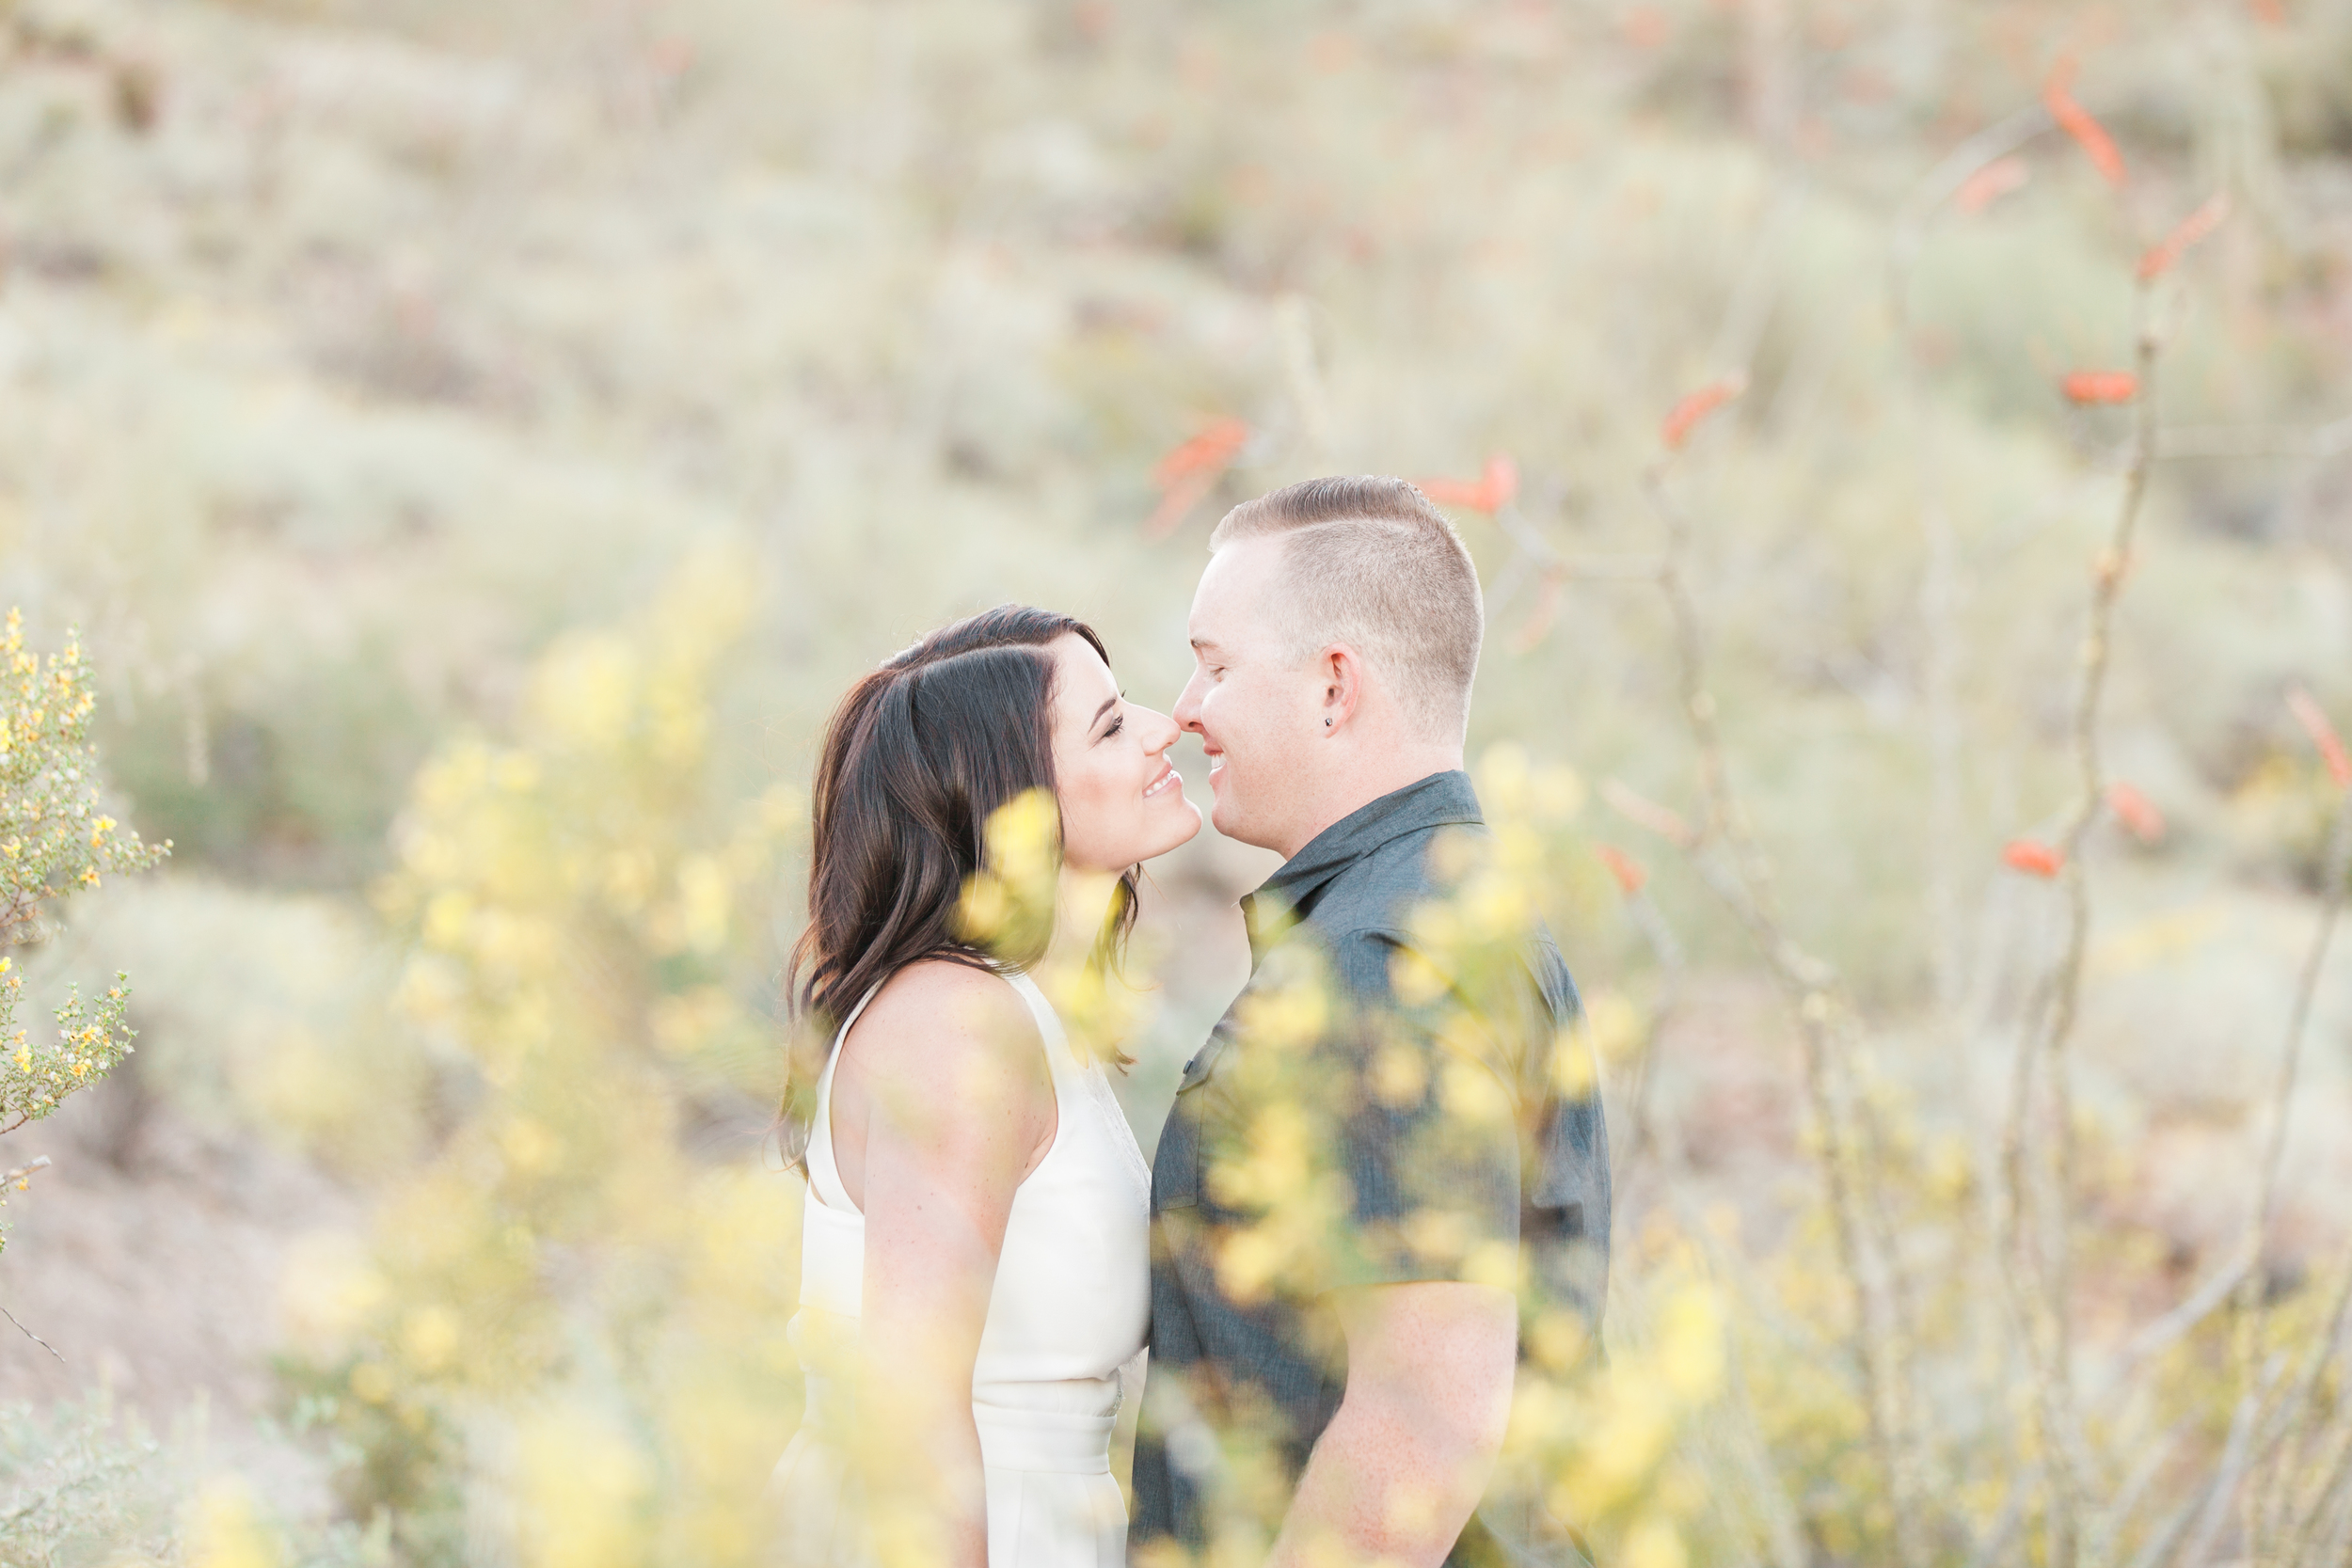 Betsy and John | Phoenix Wedding Photographers | See more at BetsyandJohn.com